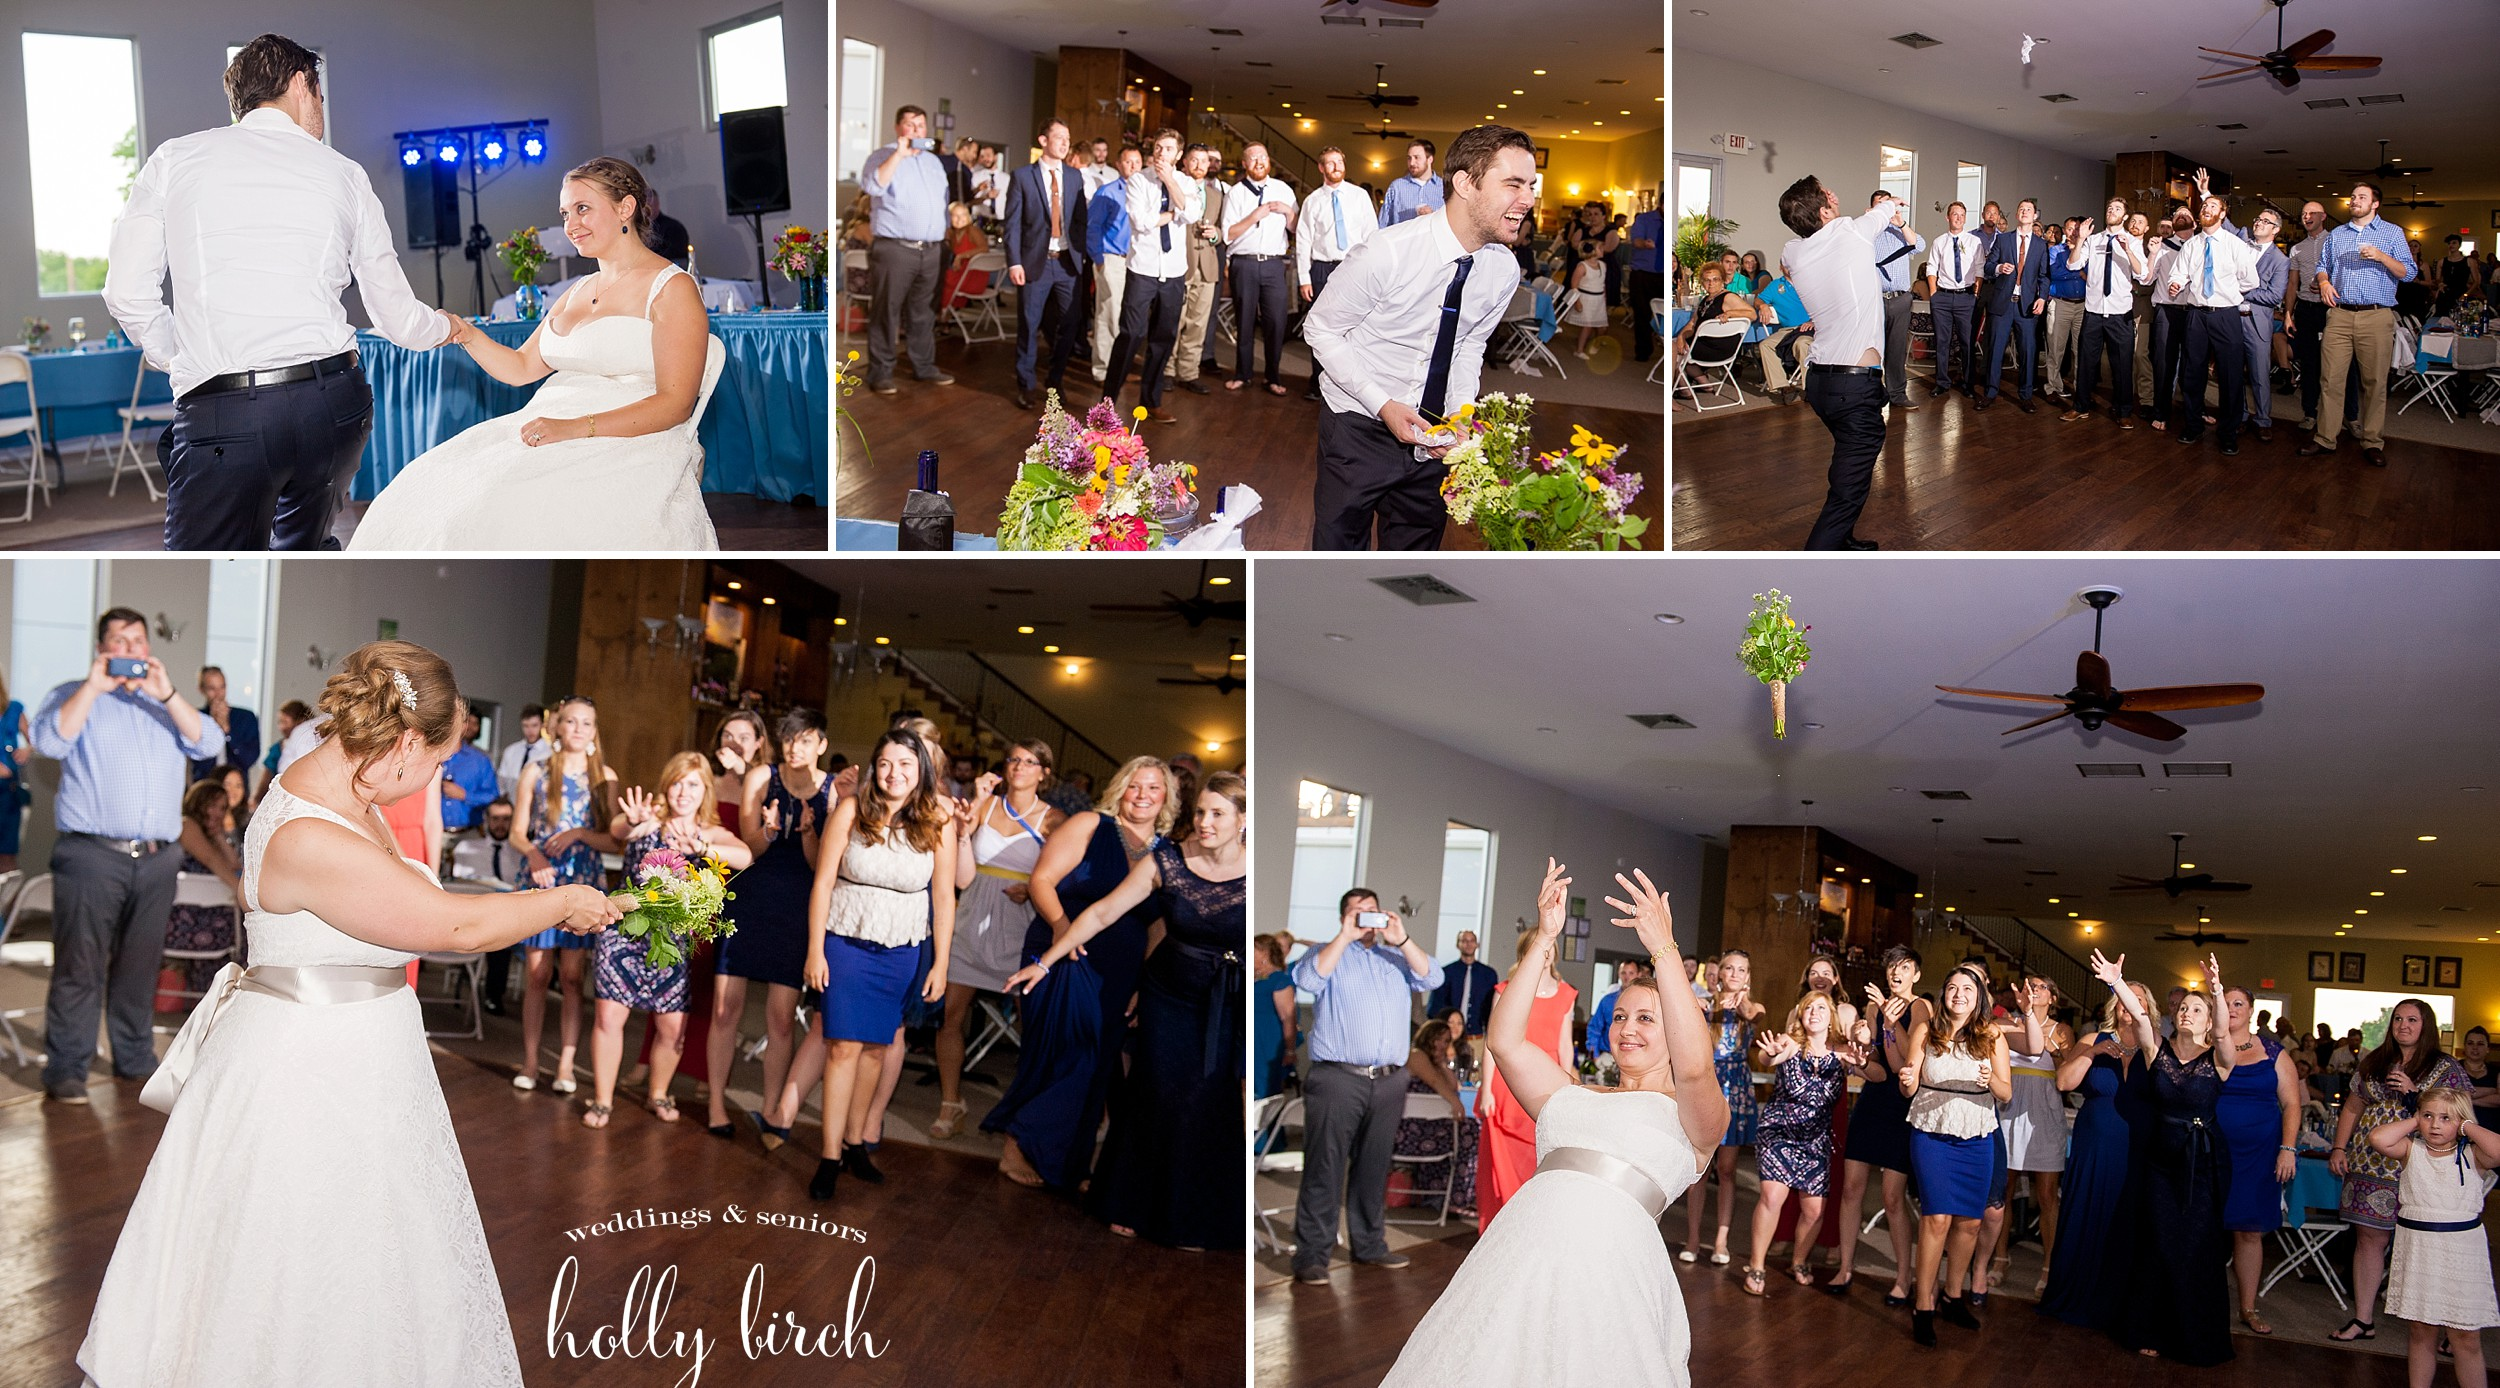 garter and bouquet toss